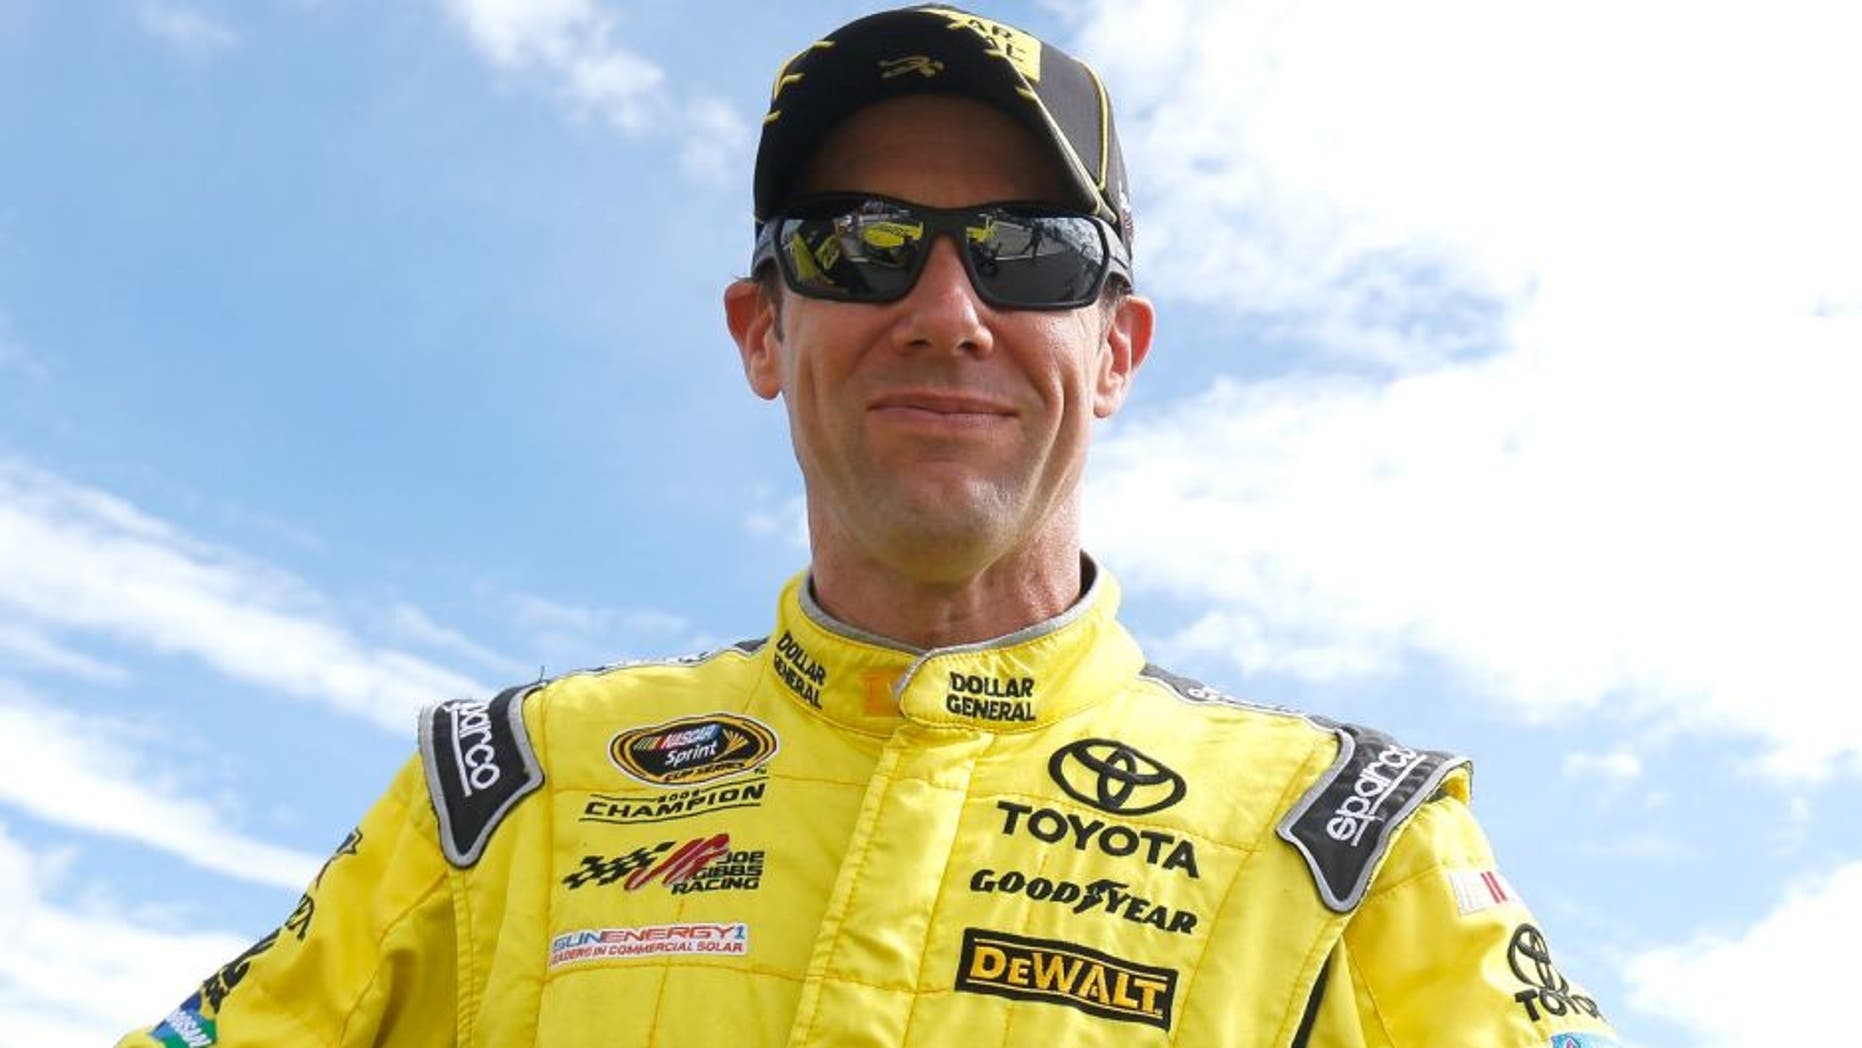 """Matt Kenseth, driver of the #20 Dollar General Toyota, stands on the grid during qualifying for the NASCAR Sprint Cup Series Axalta """"We Paint Winners"""" 400 at Pocono Raceway on June 5, 2015 in Long Pond, Pennsylvania."""